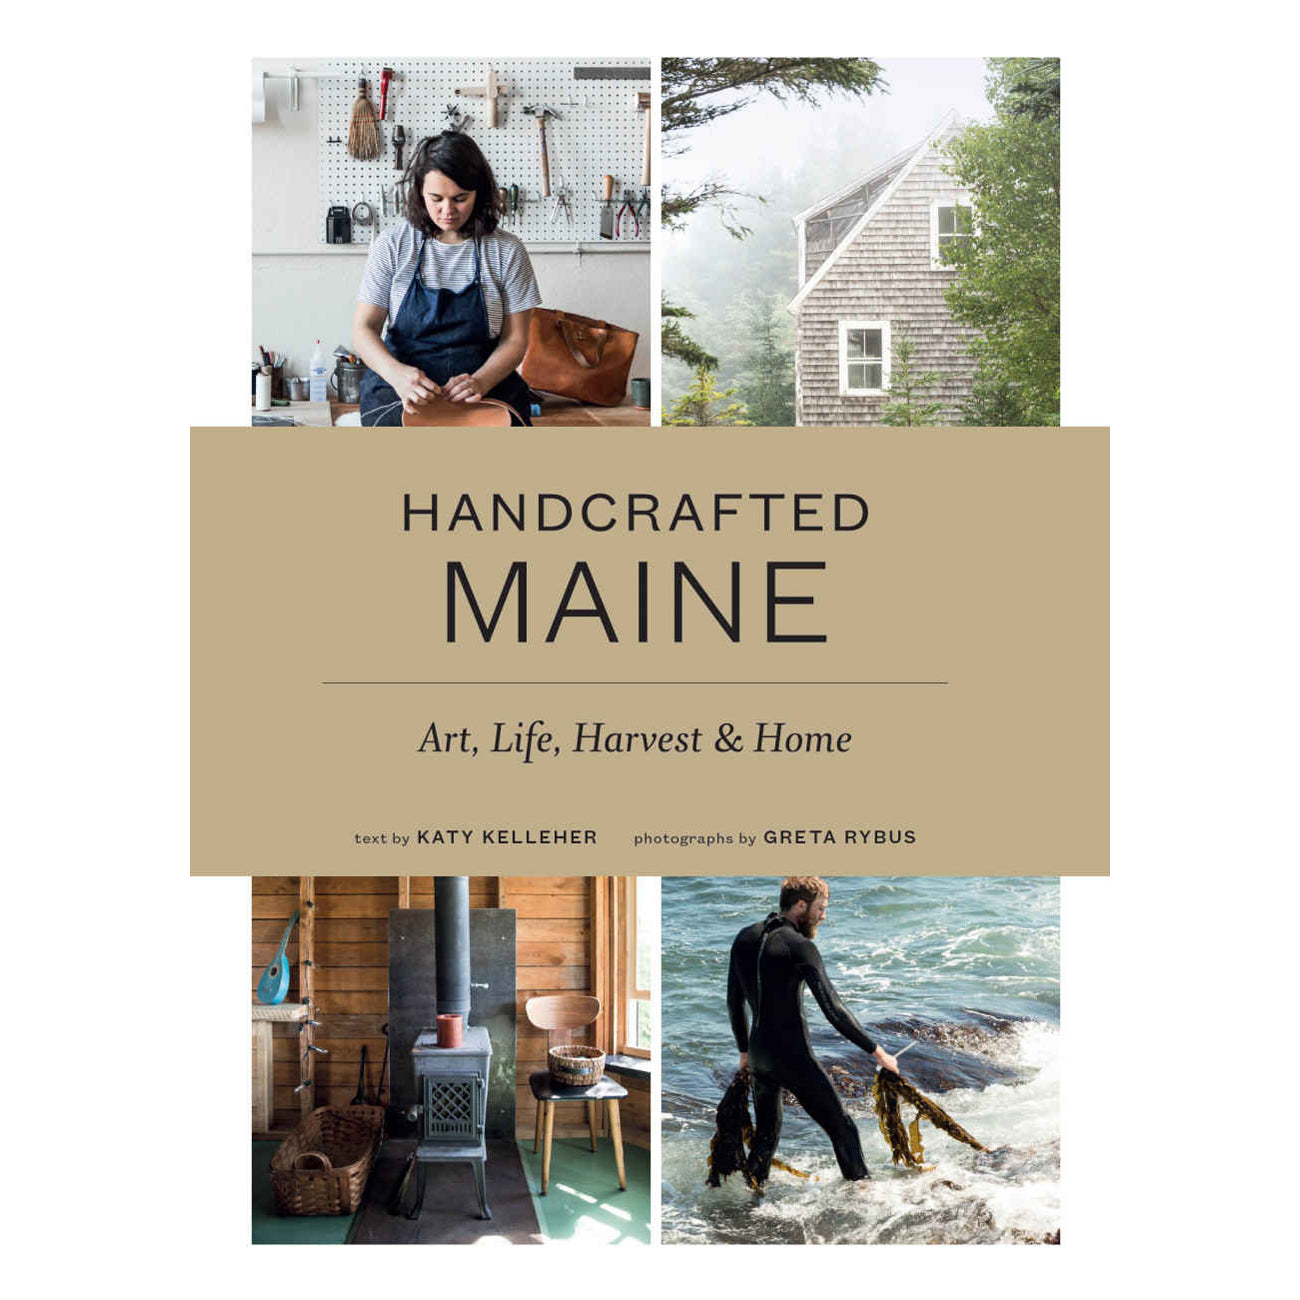 handcrafted maine: art, life, harvest & home